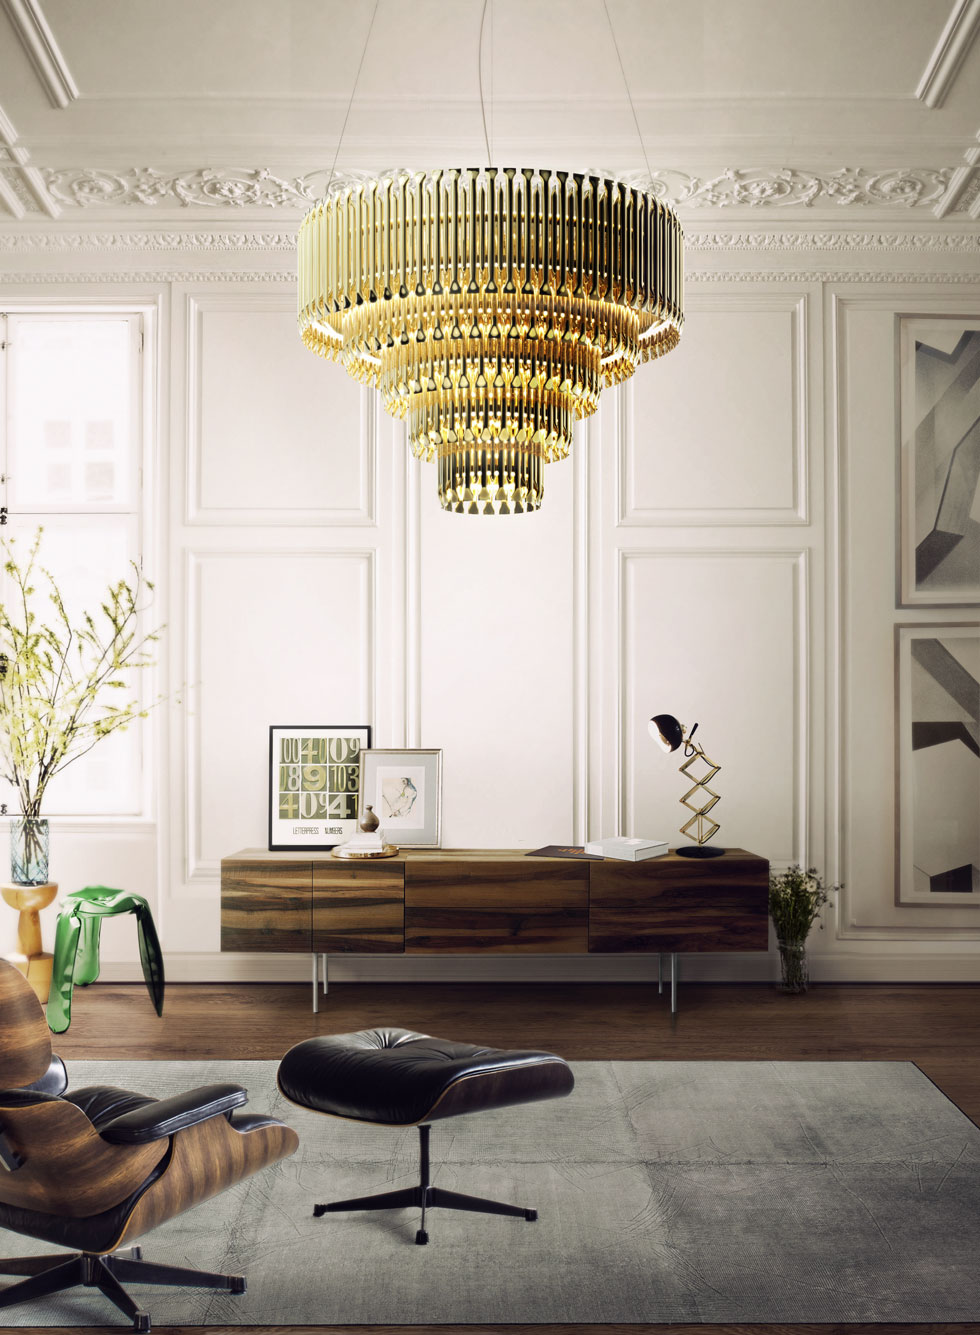 matheny-suspension-light-fixture-brass-tubes-stilnovo-chandelier-06 Lighting Stores Online Lighting Stores that we recommend matheny suspension light fixture brass tubes stilnovo chandelier 06